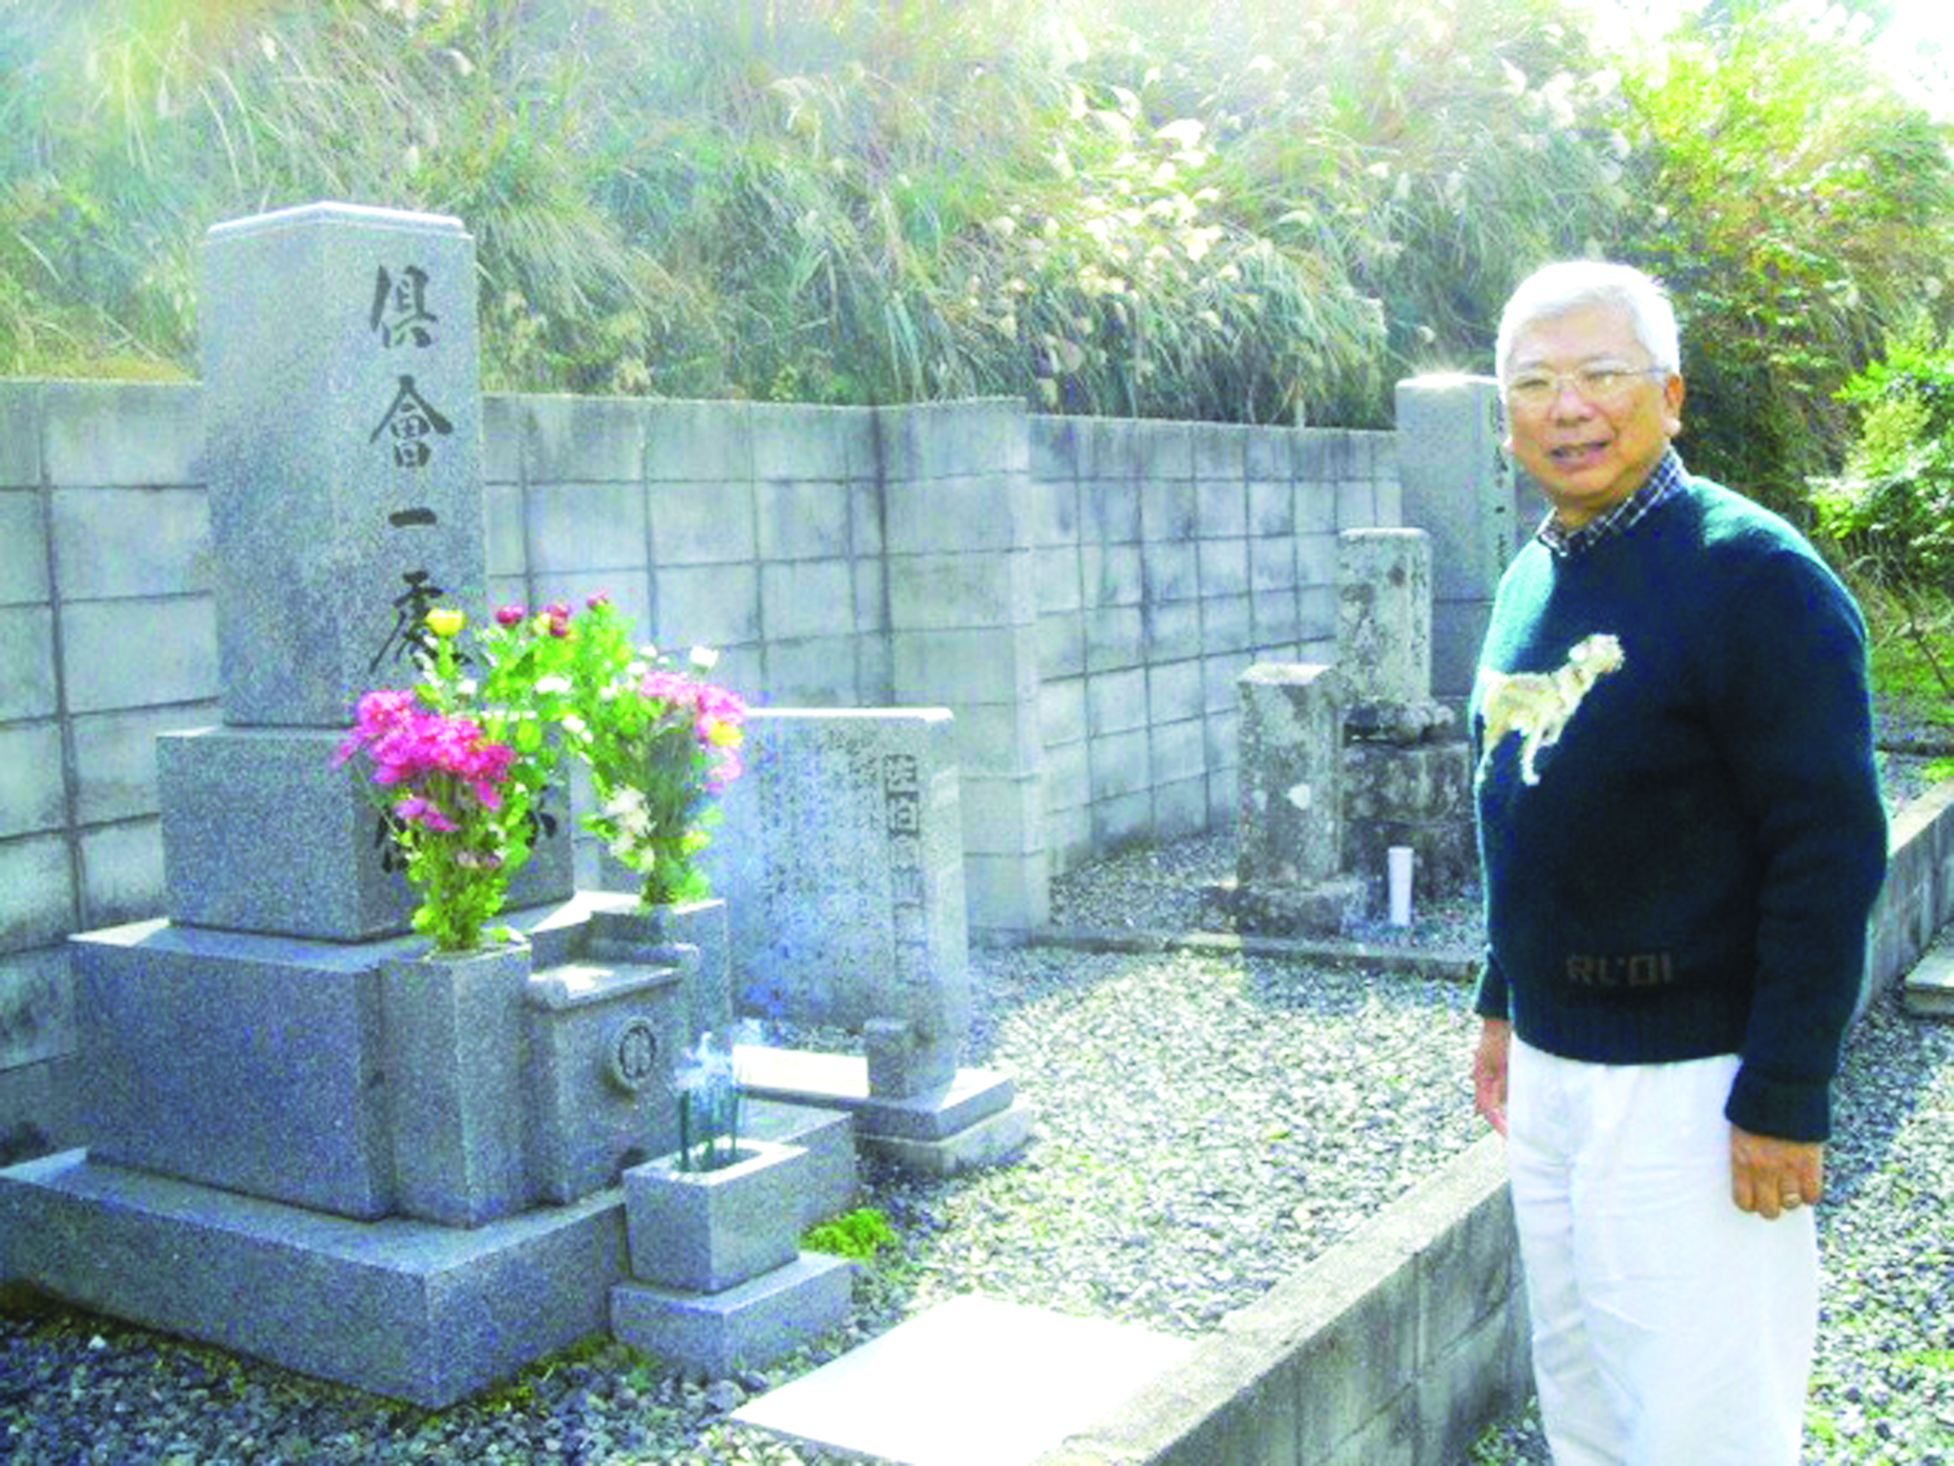 Cover Photo for Feb. 3rd's Issue - of Ken Saiki (Saeki) visiting his dad's Furusato